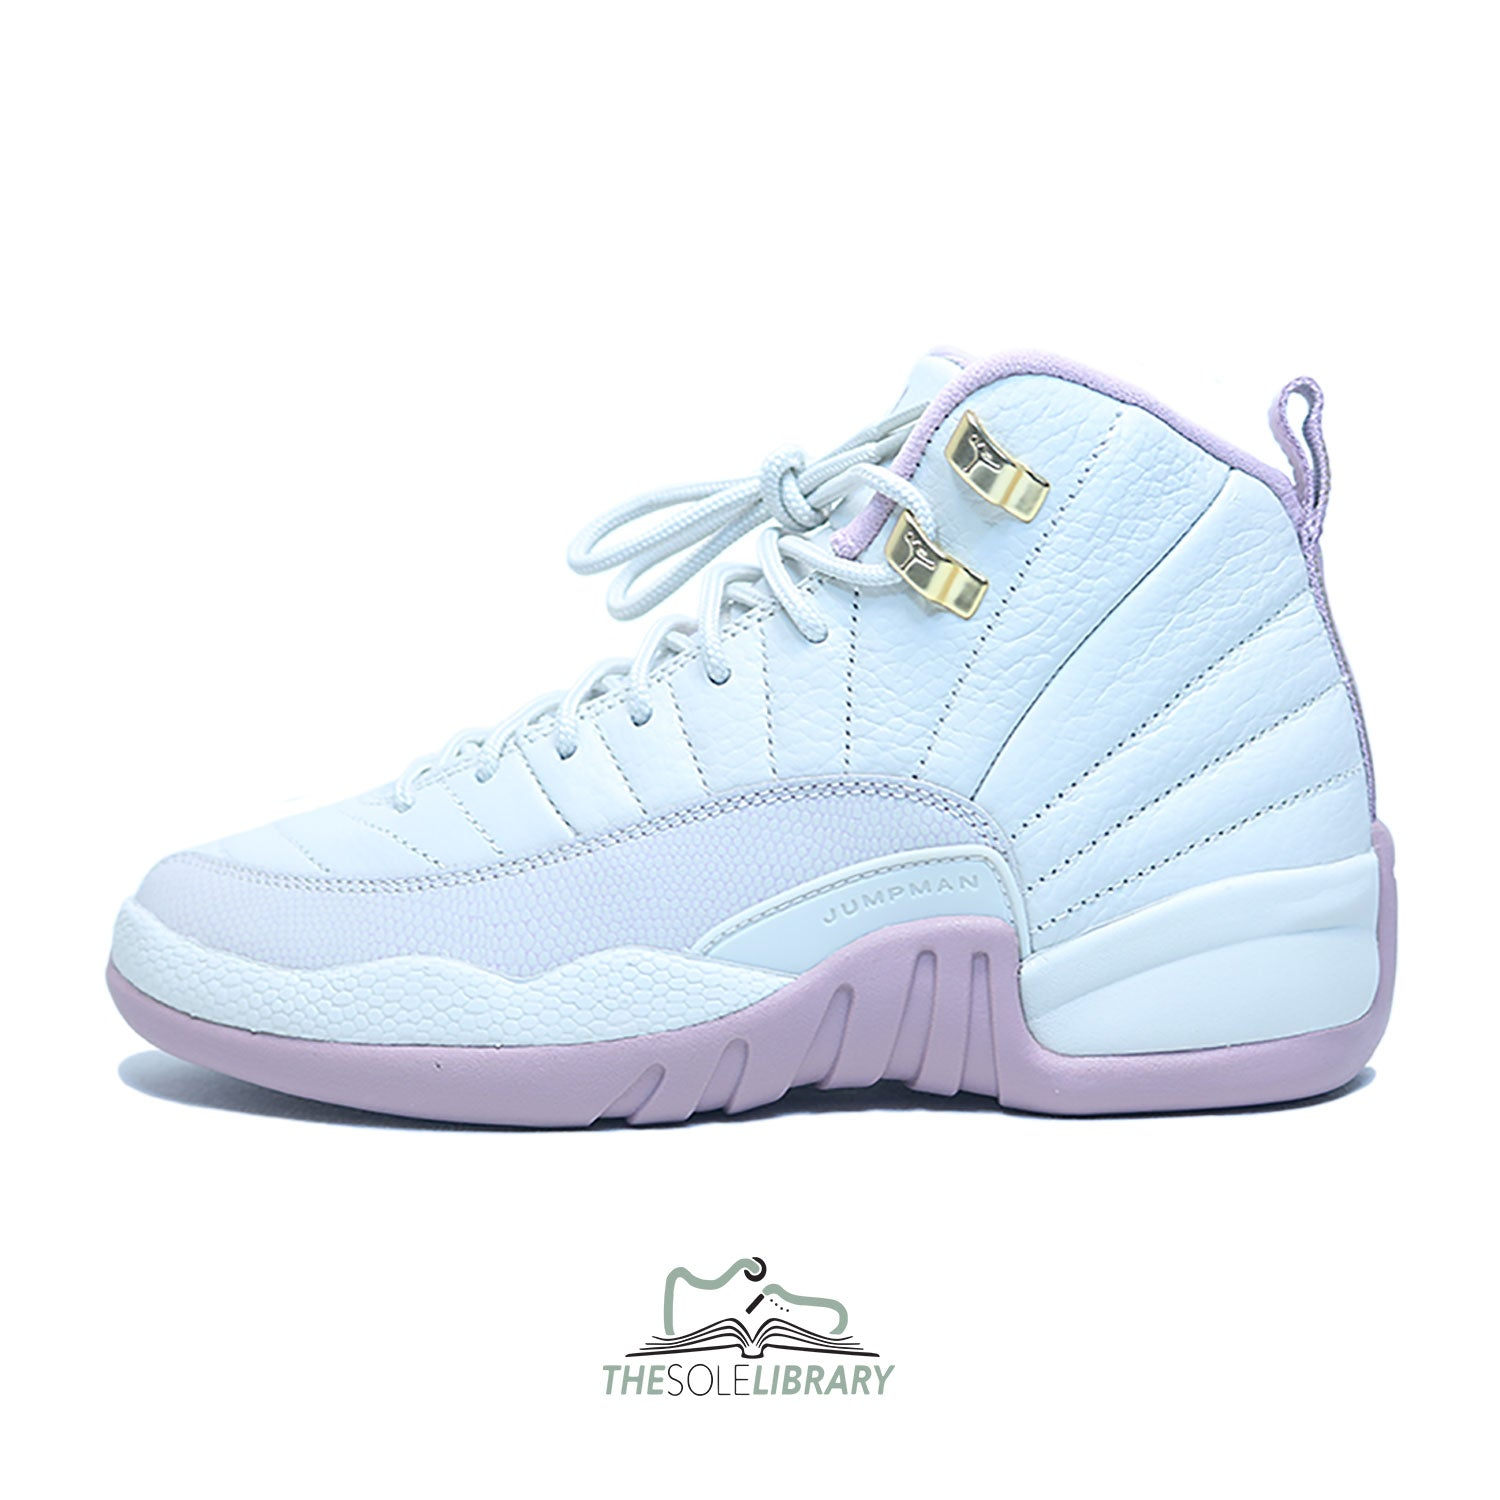 Jordan 12 Plum For Sale - The Sole Library 28fc68452